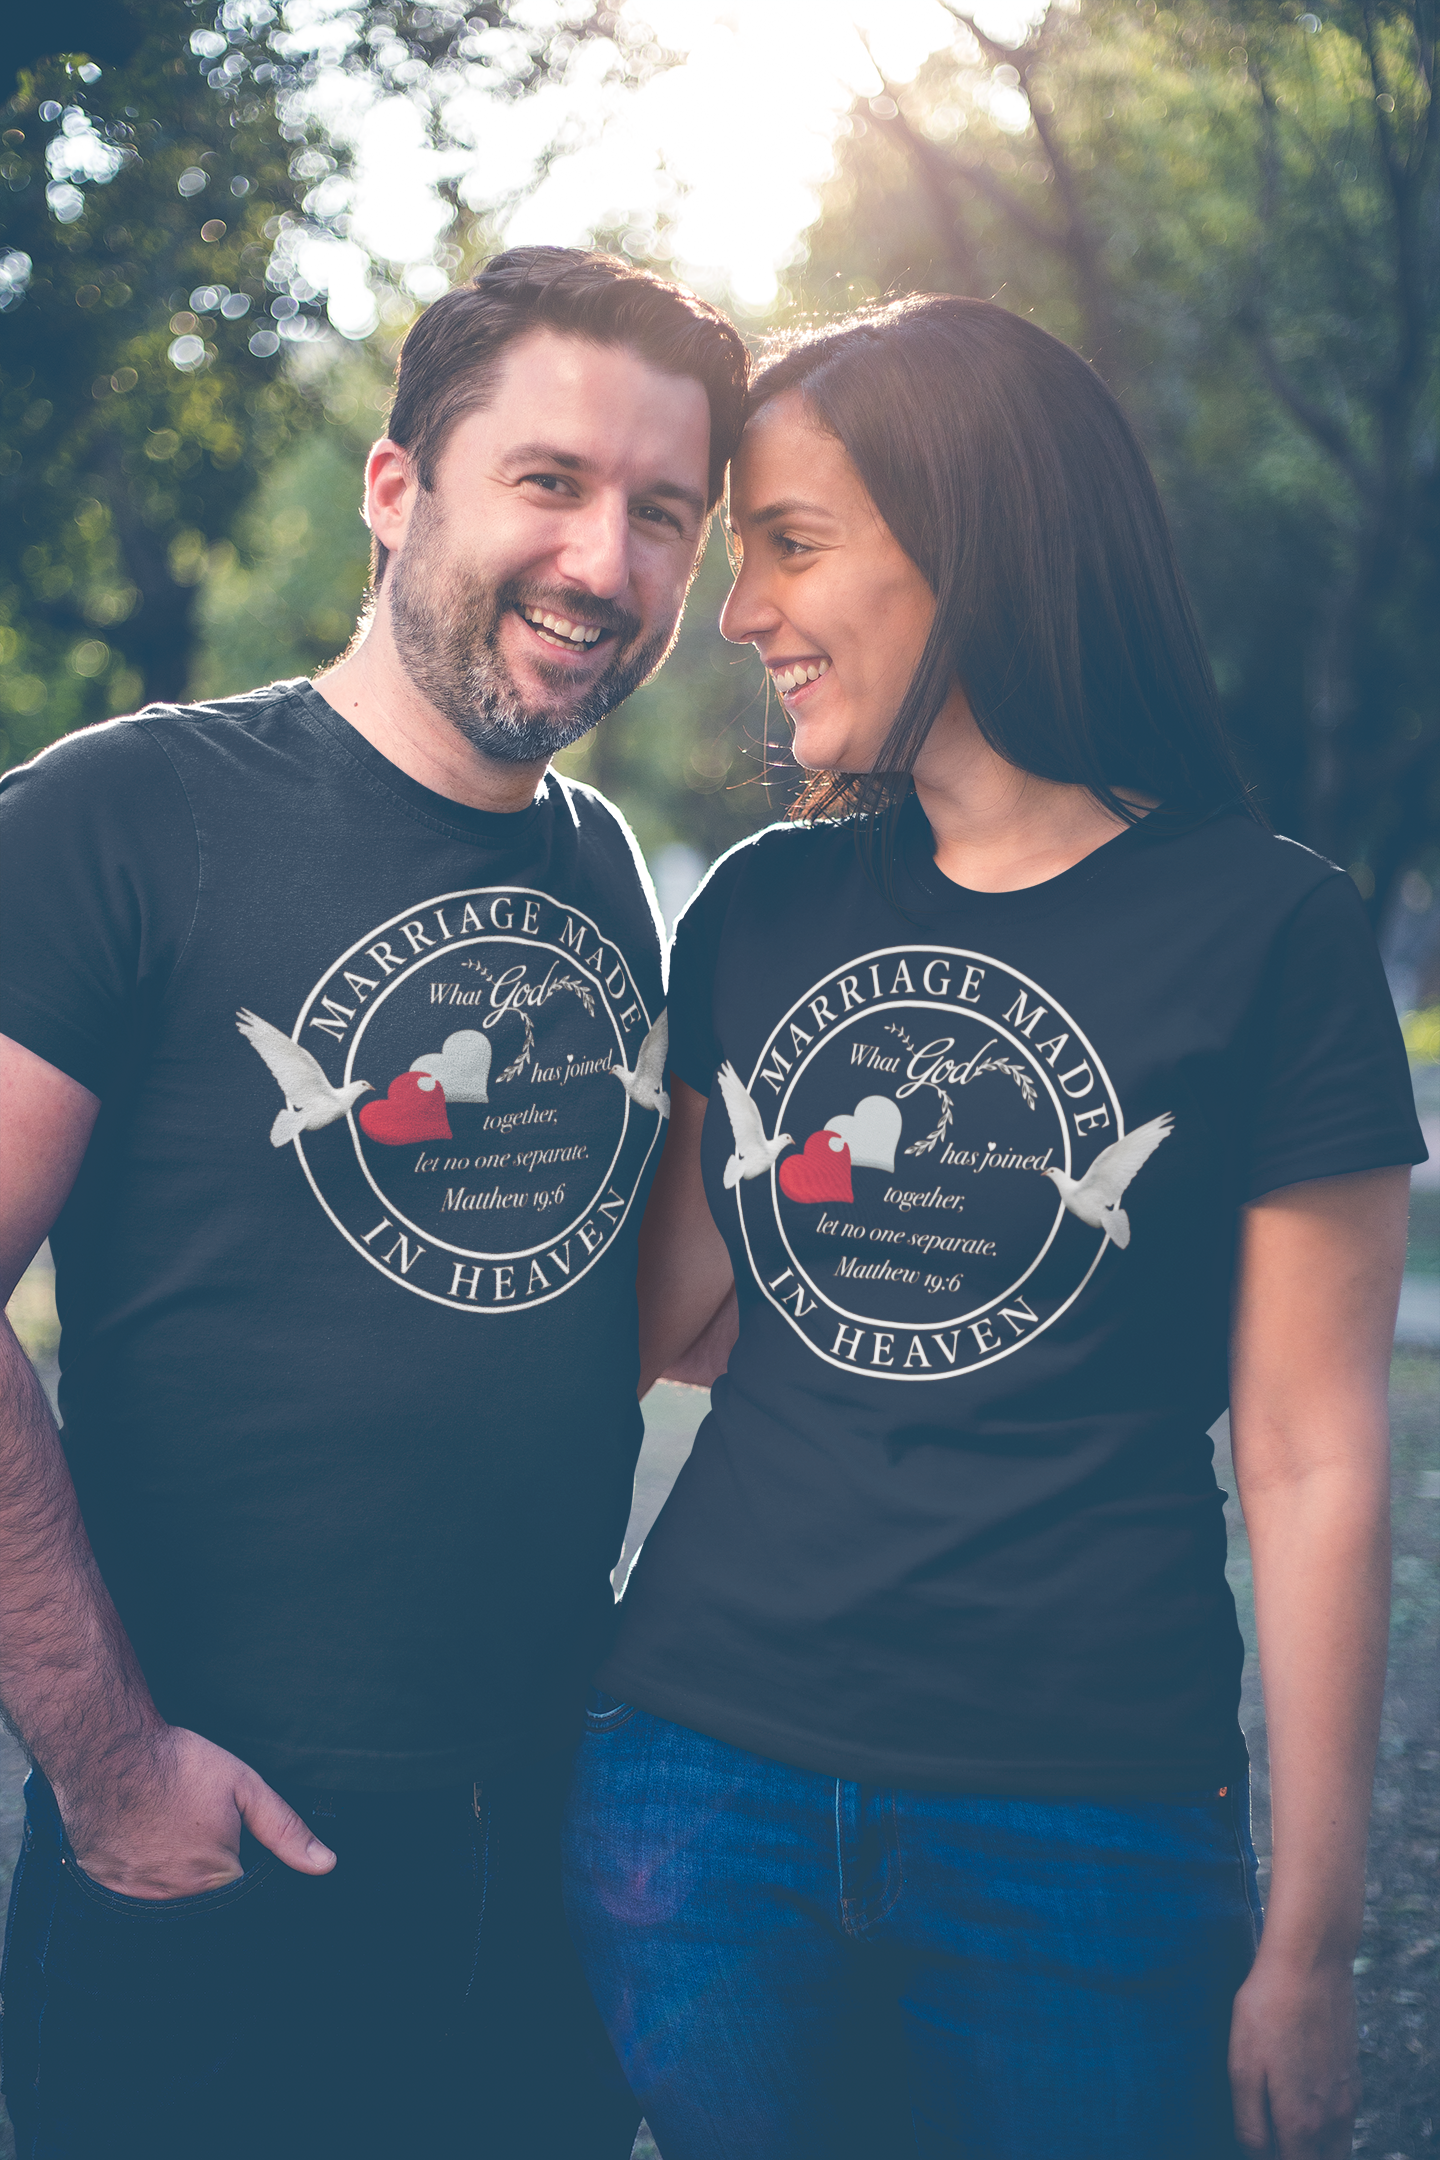 Marriage Made in Heaven - Couples T-Shirt